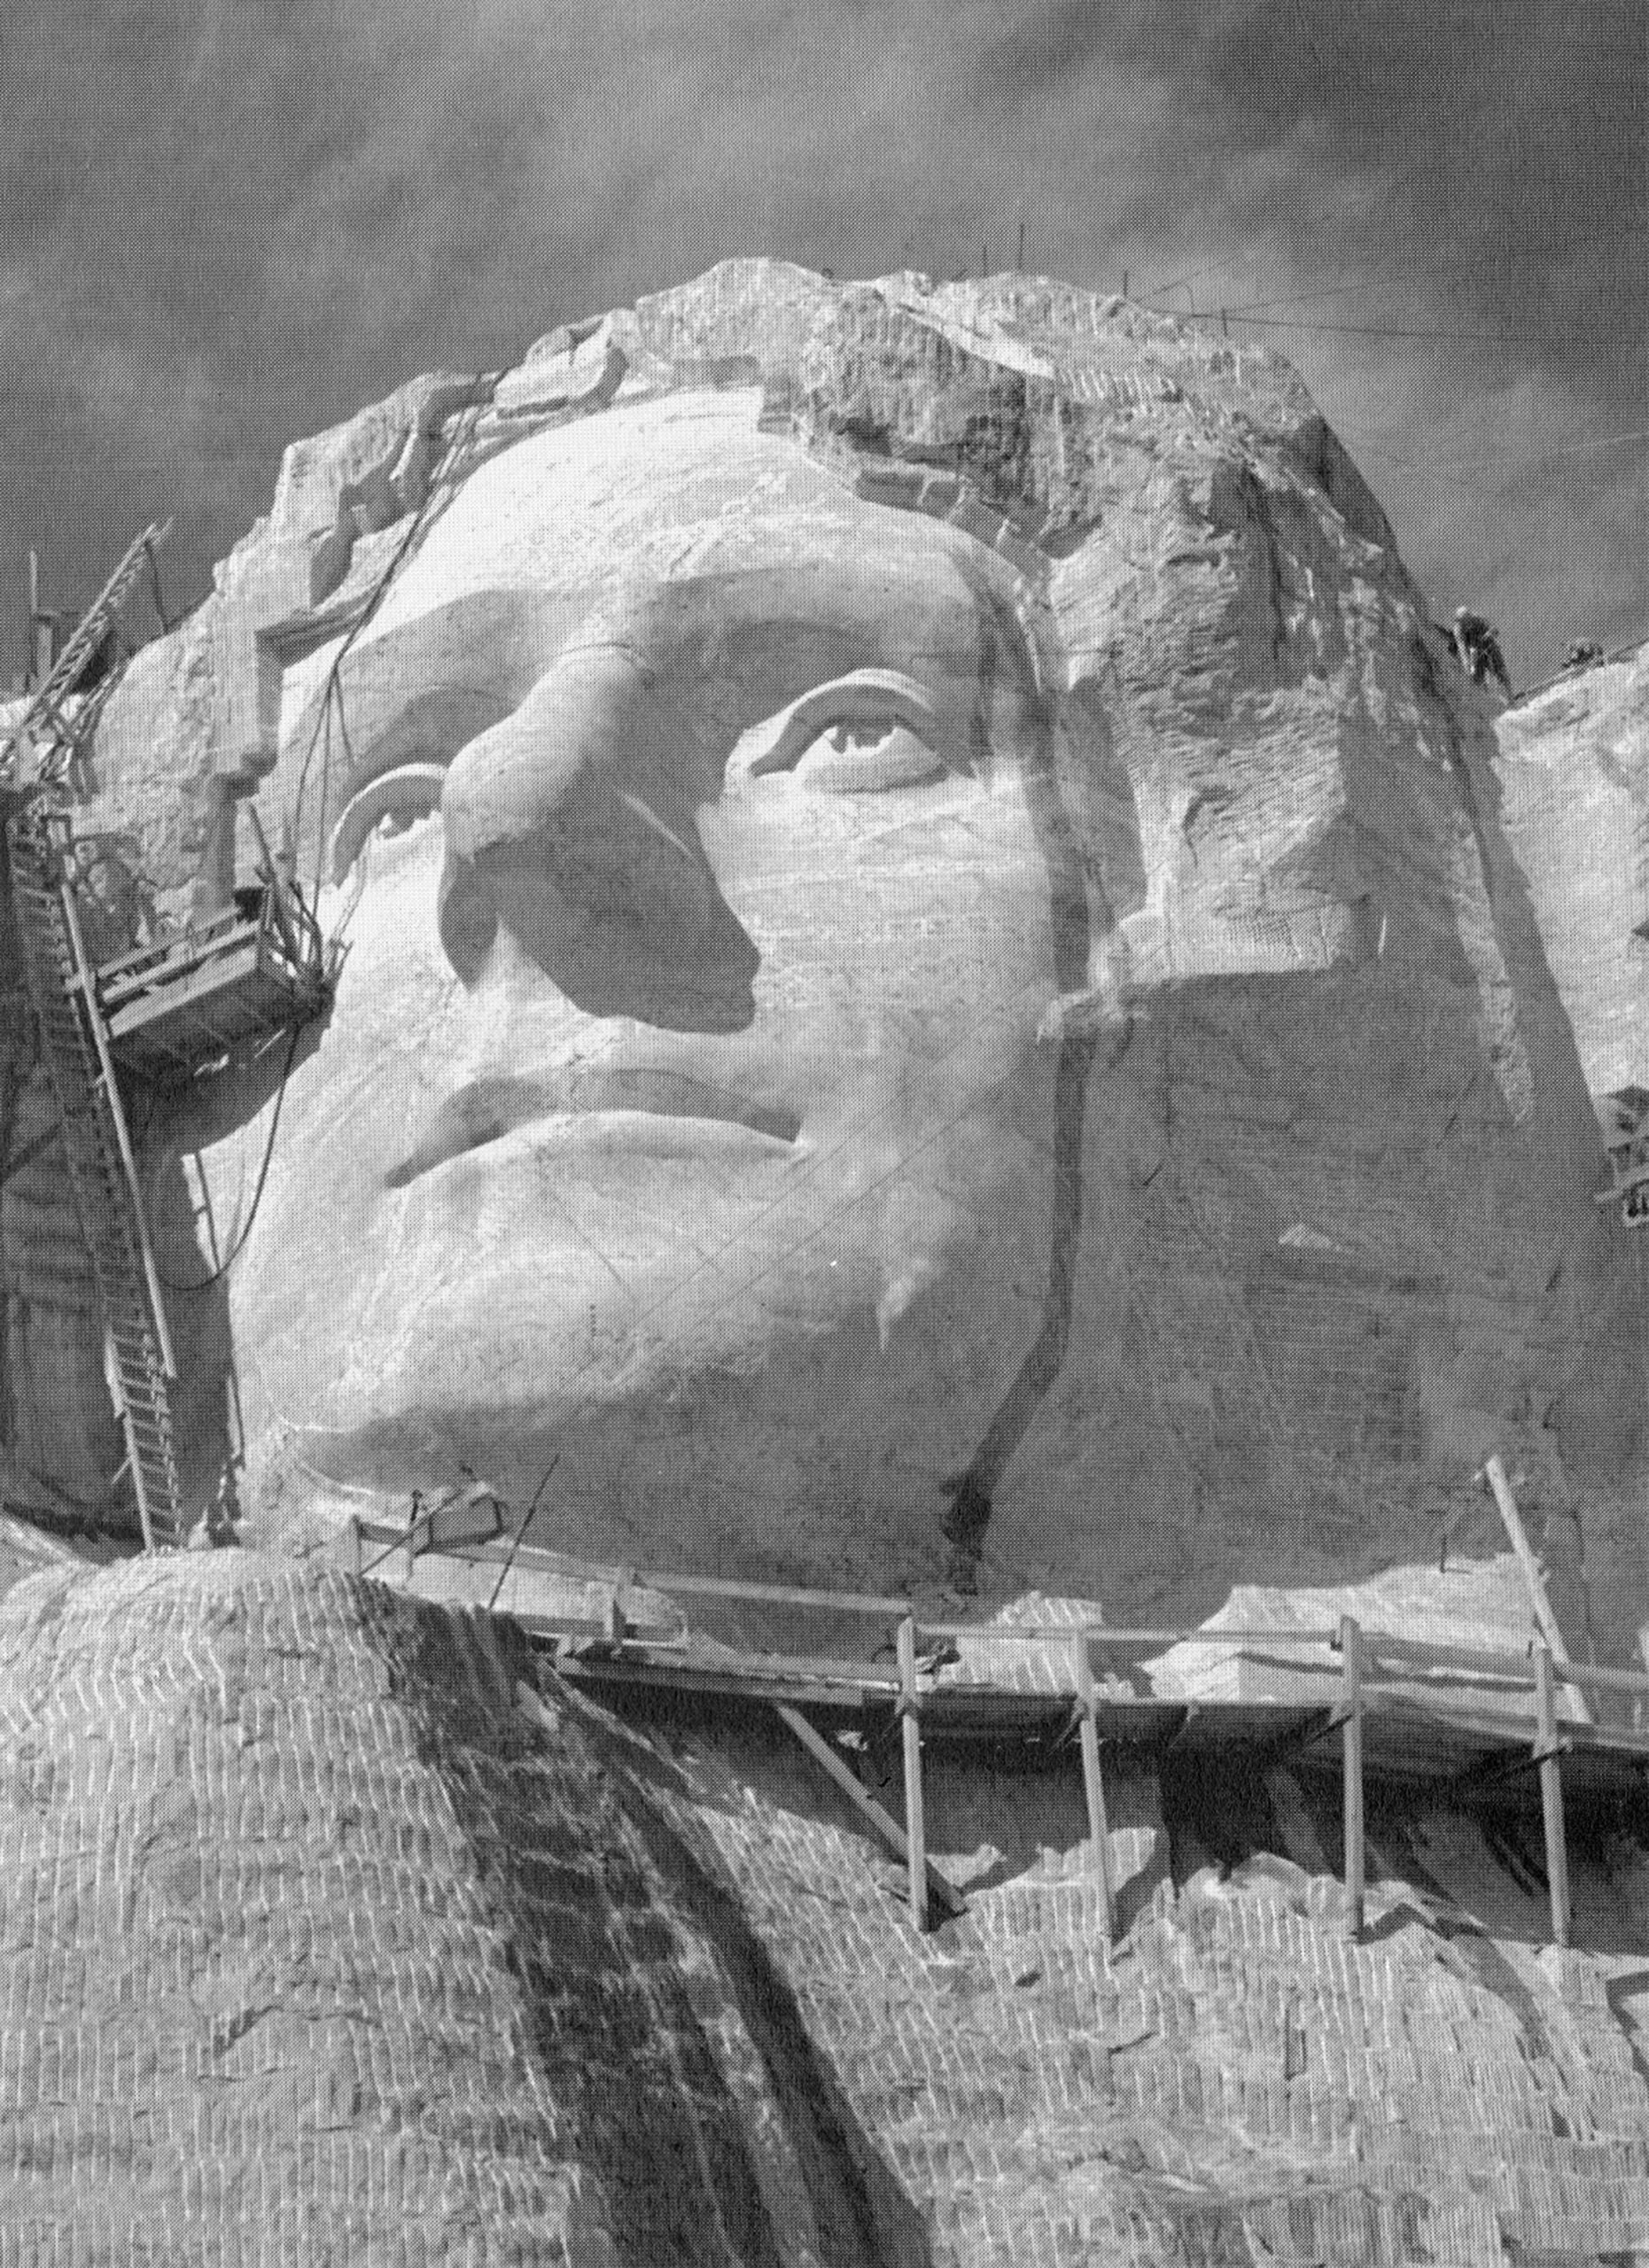 A close view of the face of Thomas Jefferson under construction, with drill marks below it, c. 1930s.